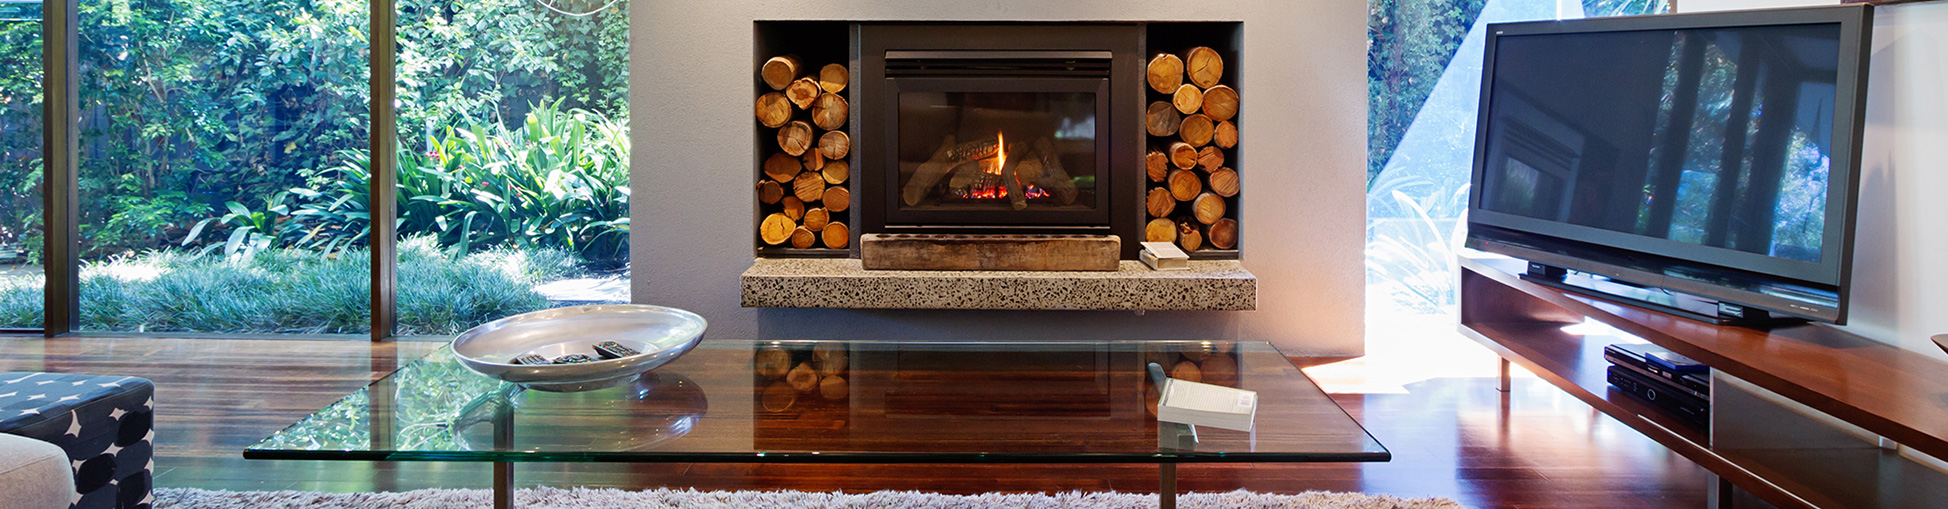 fireplace exotica kitchens